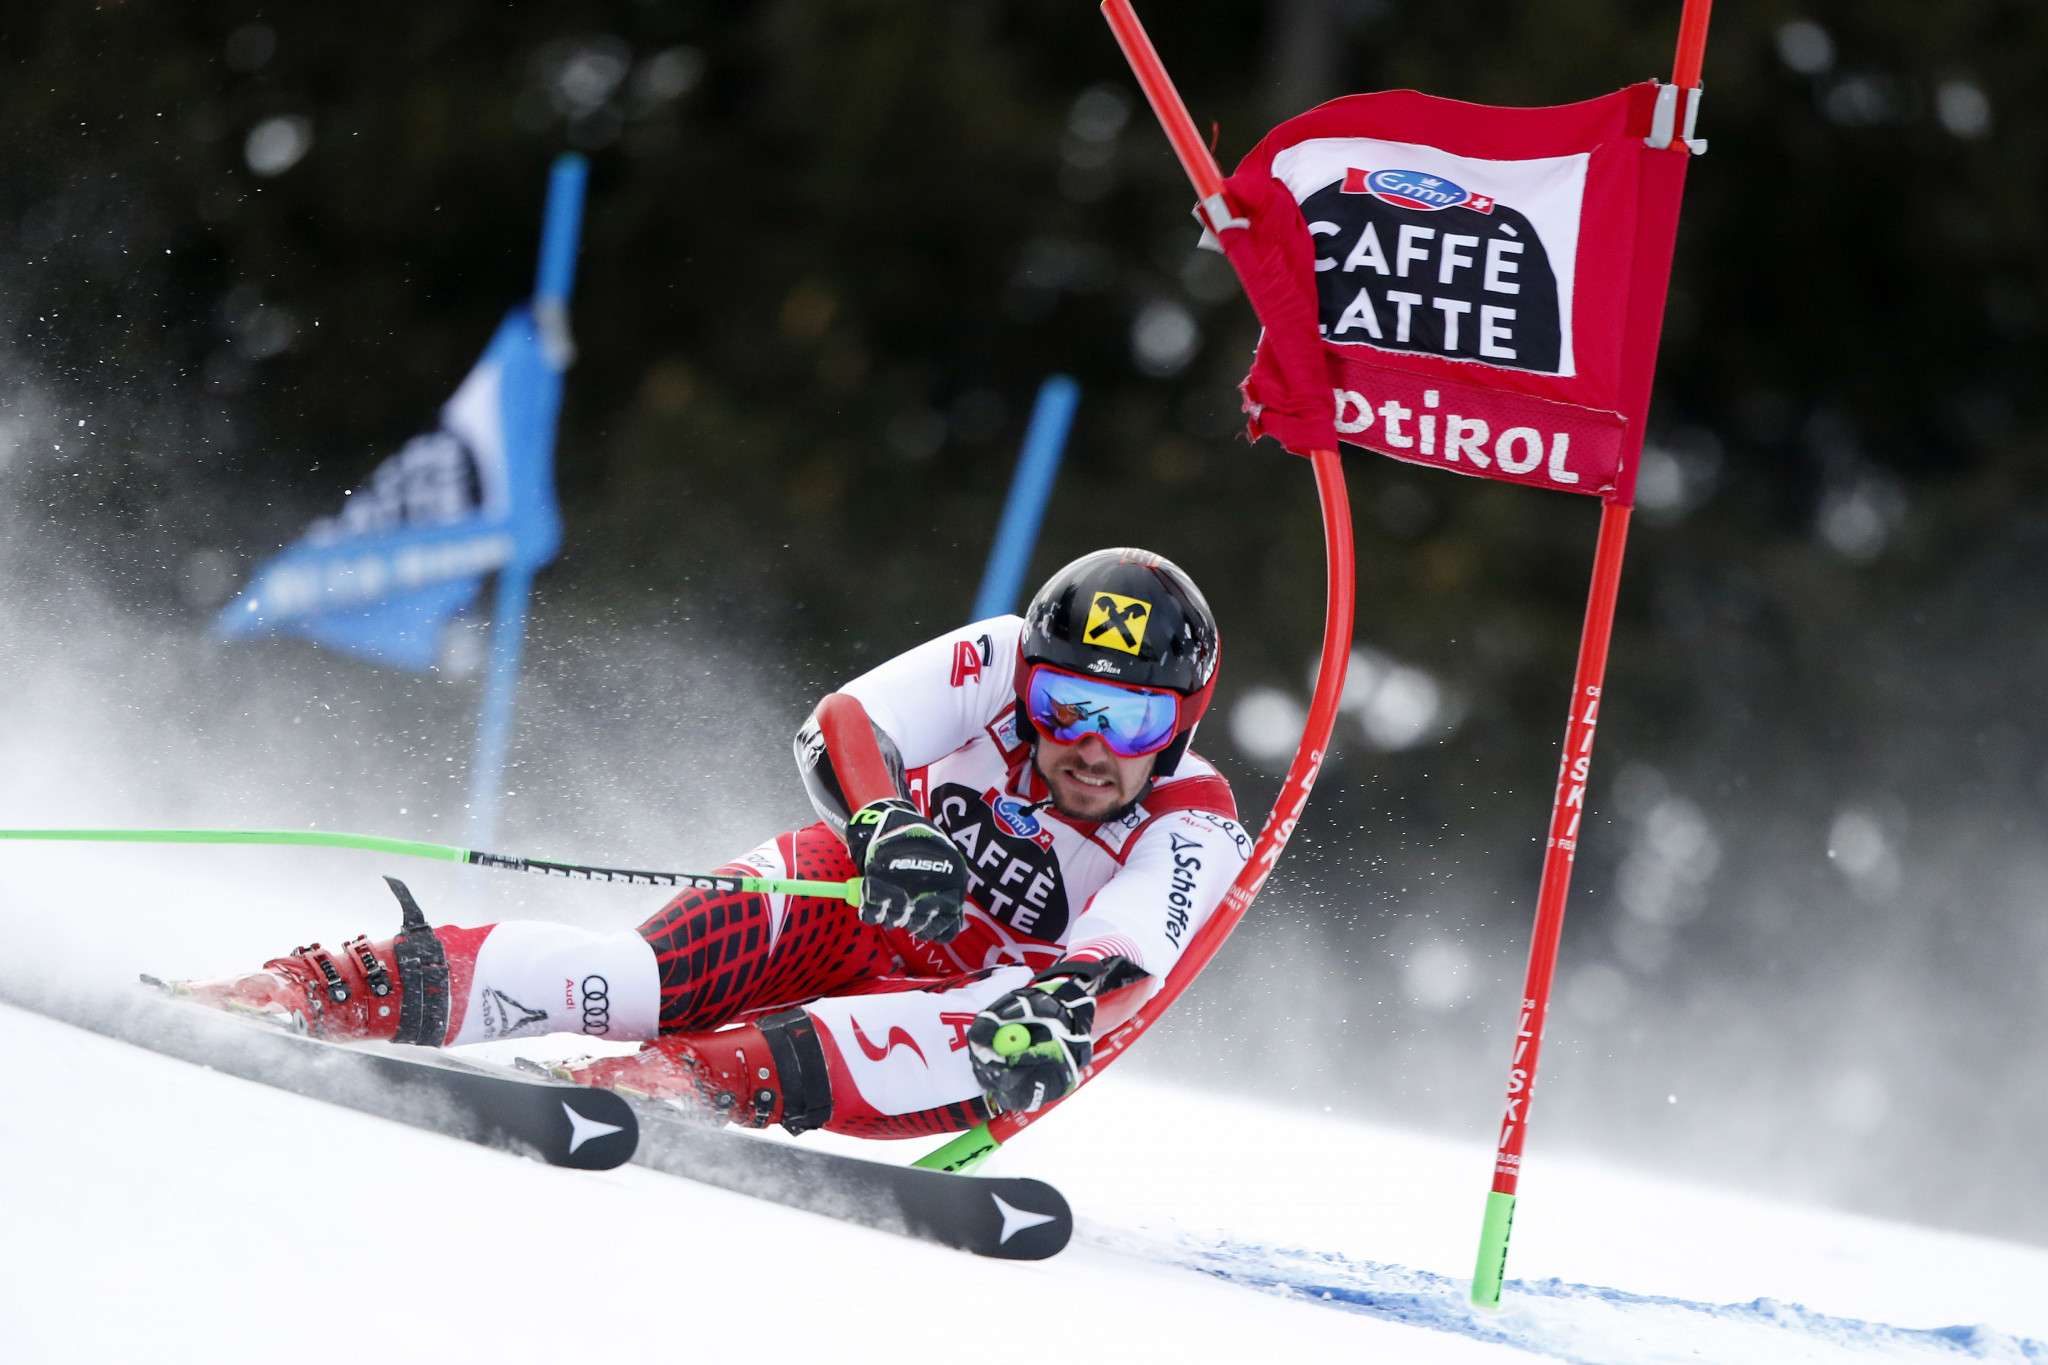 Austria's Marcel Hirscher finished two and a half seconds ahead of the nearest challengerin today's FIS World Cup giant slalom in Alta Badia ©FIS